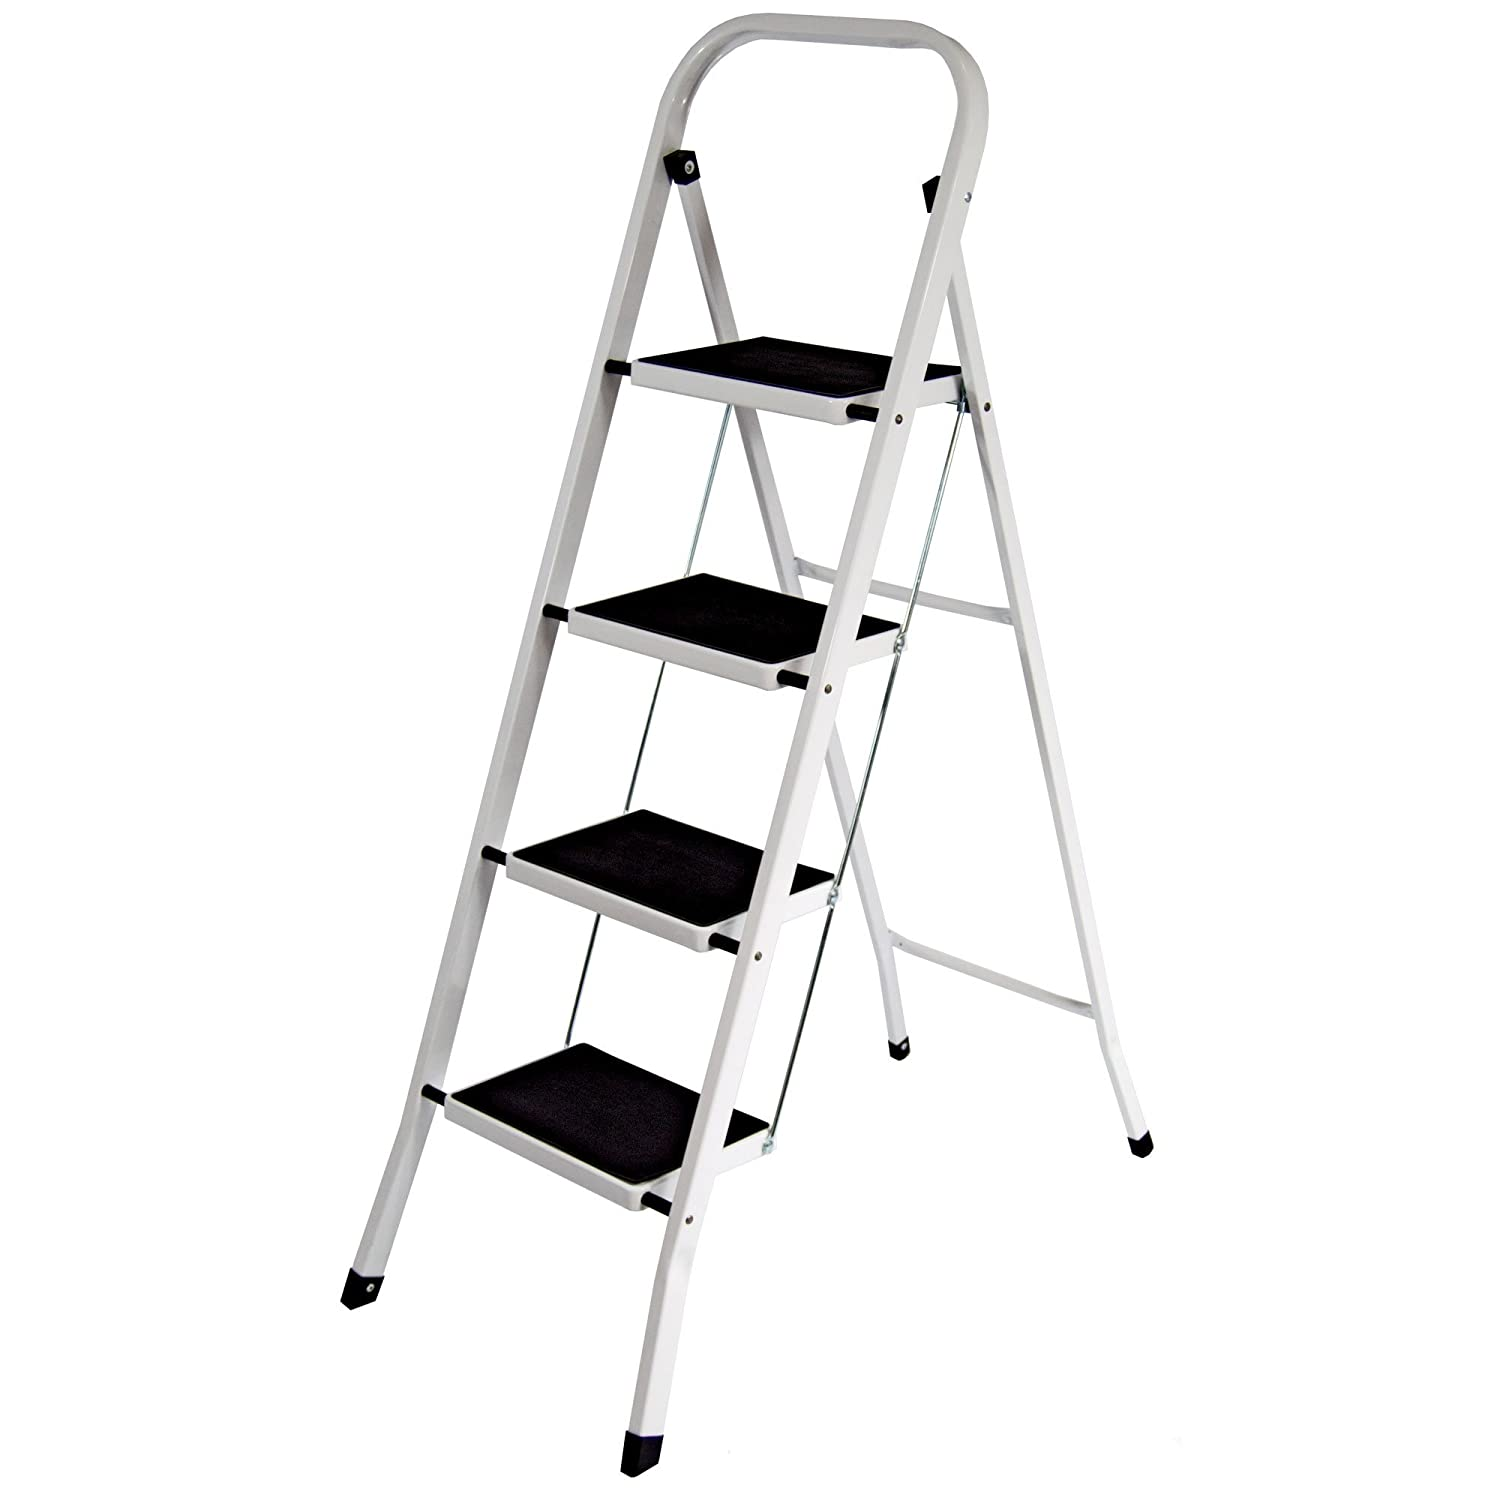 Home Vida 4-Step Steel Portable Folding Heavy Duty Ladder - Multi-Colour